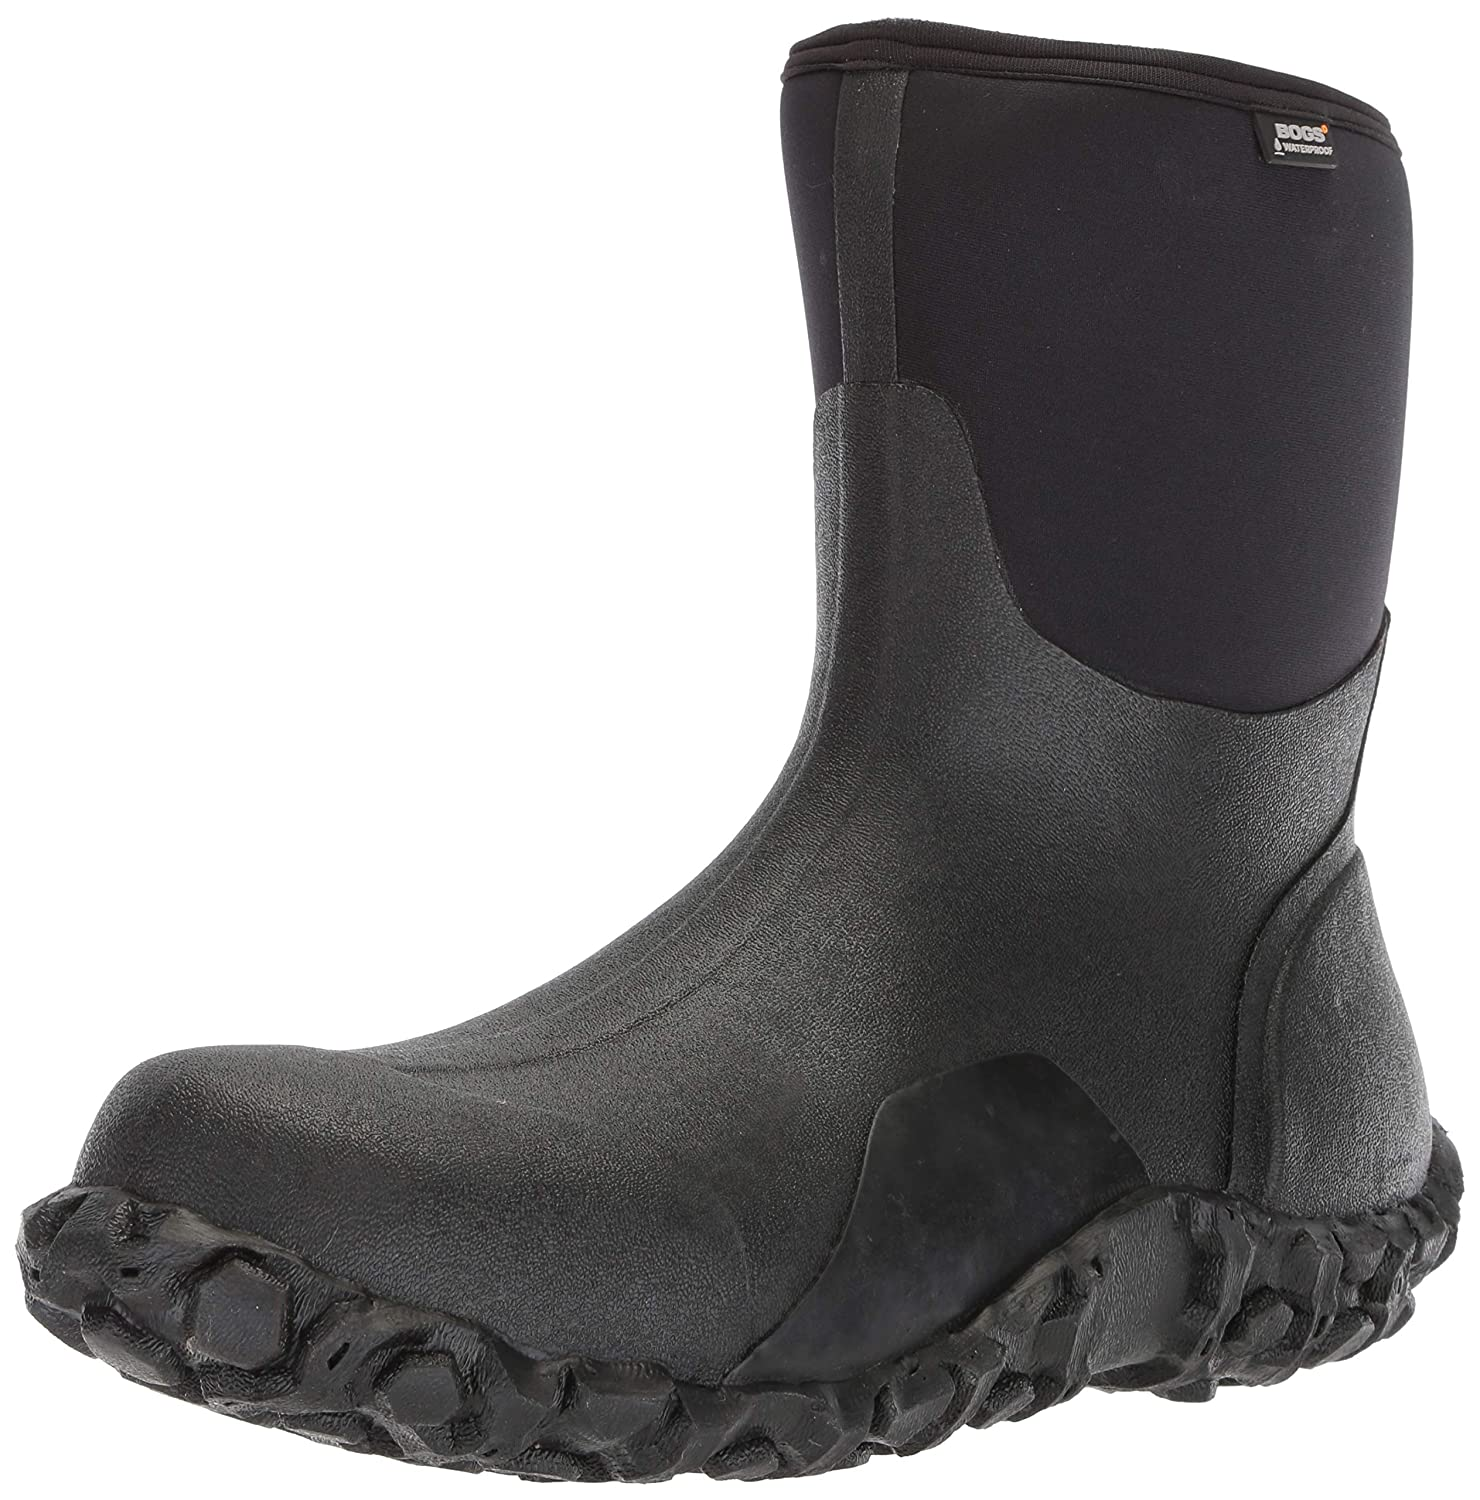 f32a9cae774 Bogs Mens Classic Mid Waterproof Insulated Rain and Winter Snow Boot